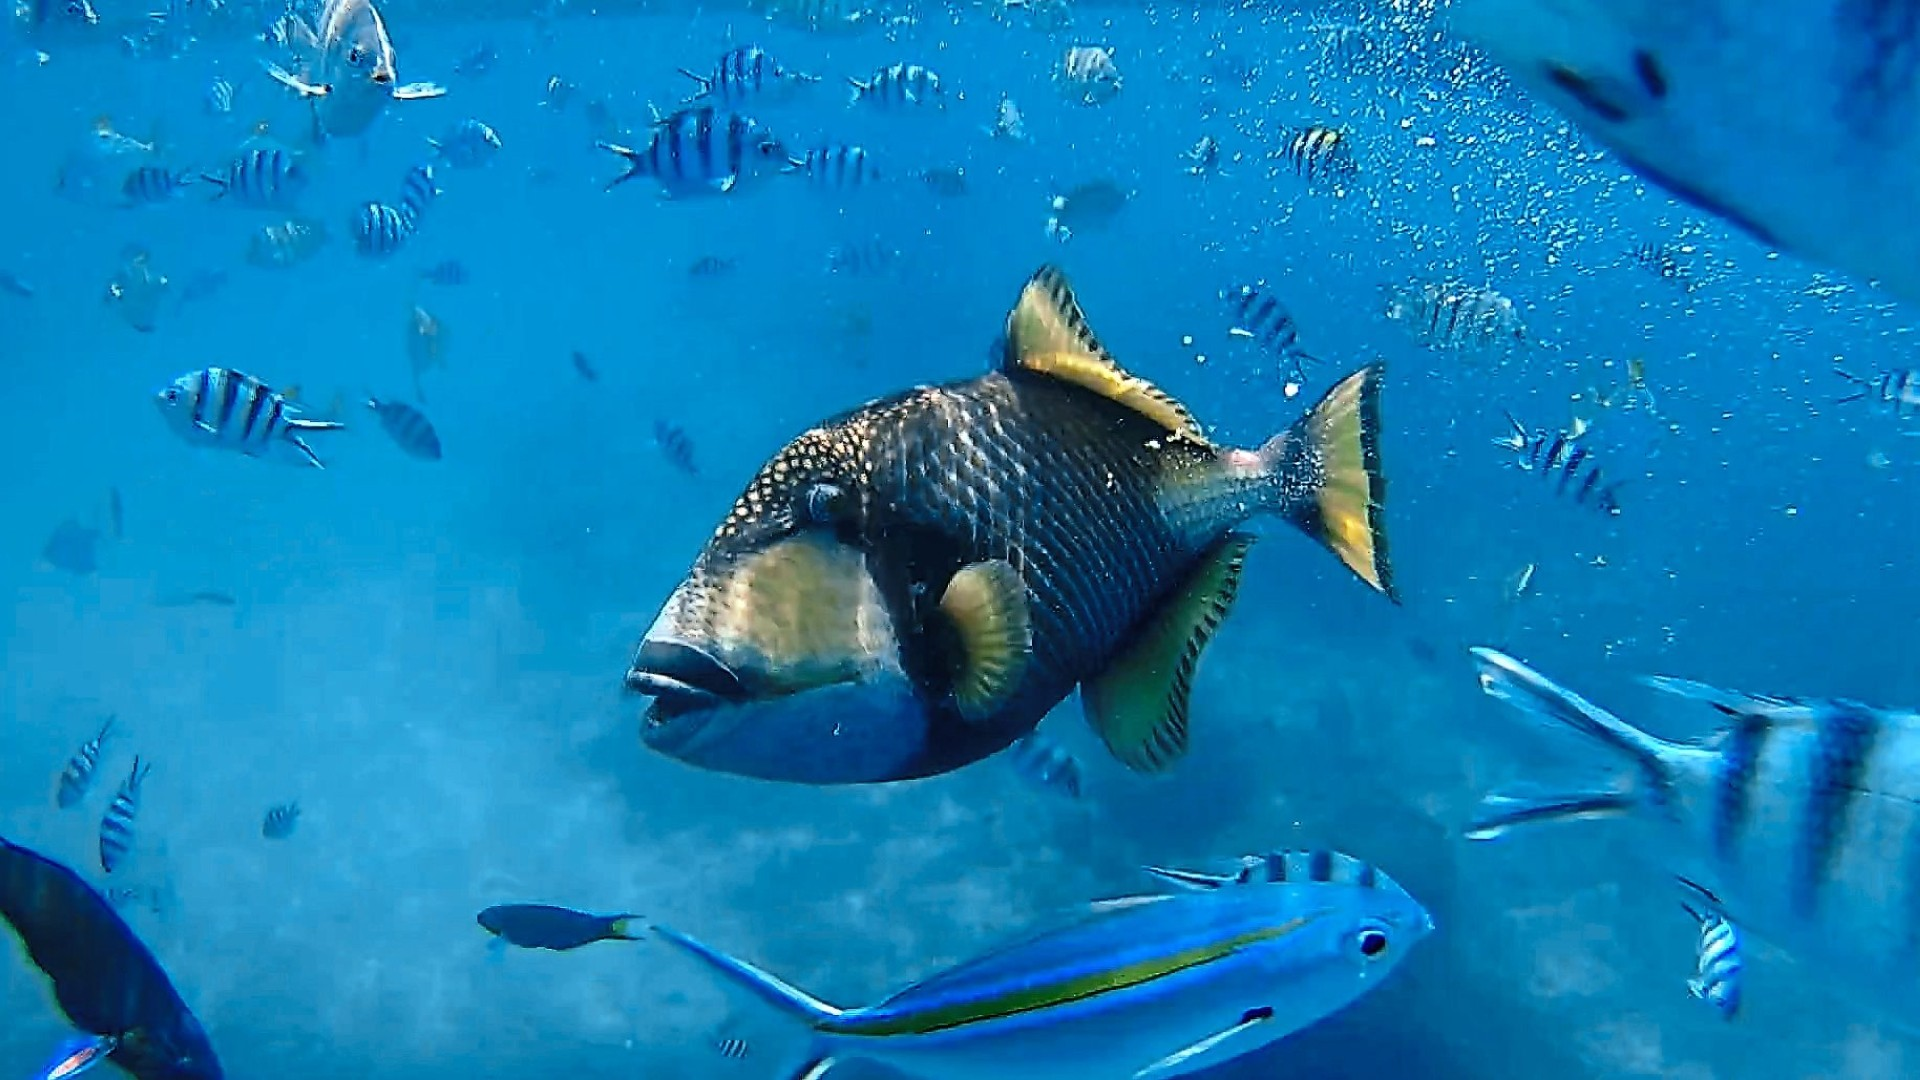 The titan triggerfish is just one of the fishes you can find here. — KENNETH LAM